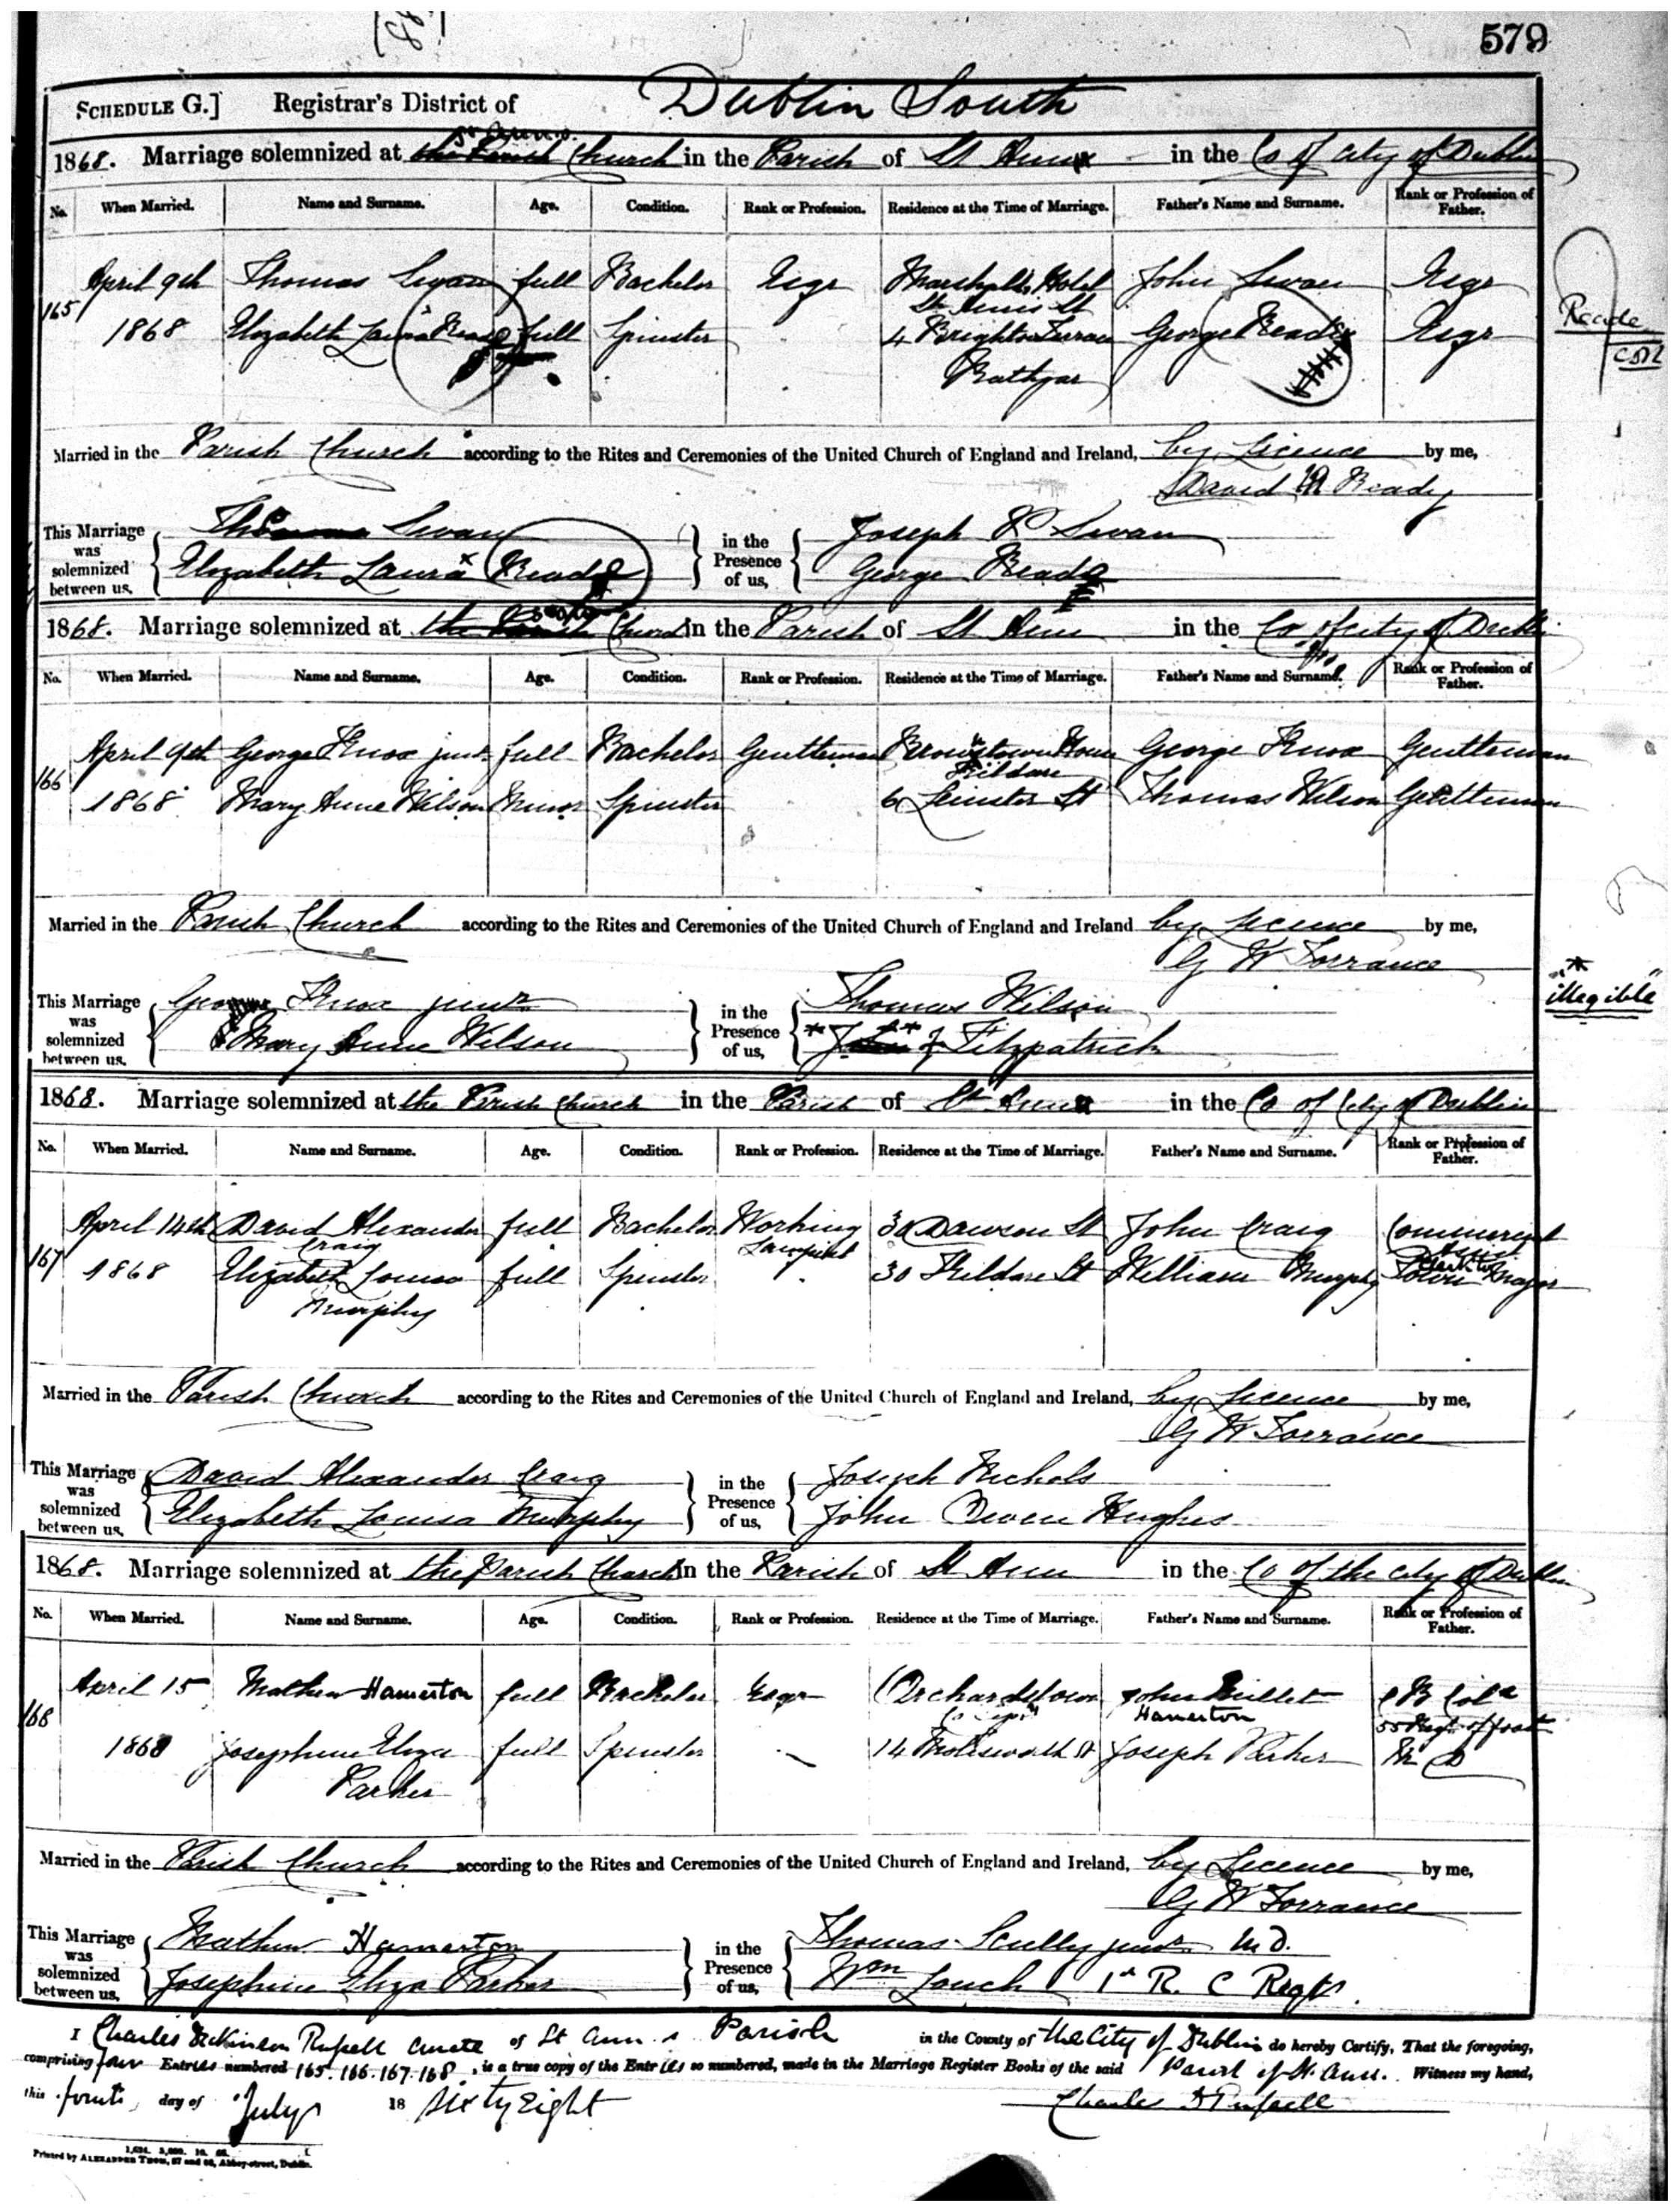 Irish civil registration how to find records of bmds etc sample records aiddatafo Image collections